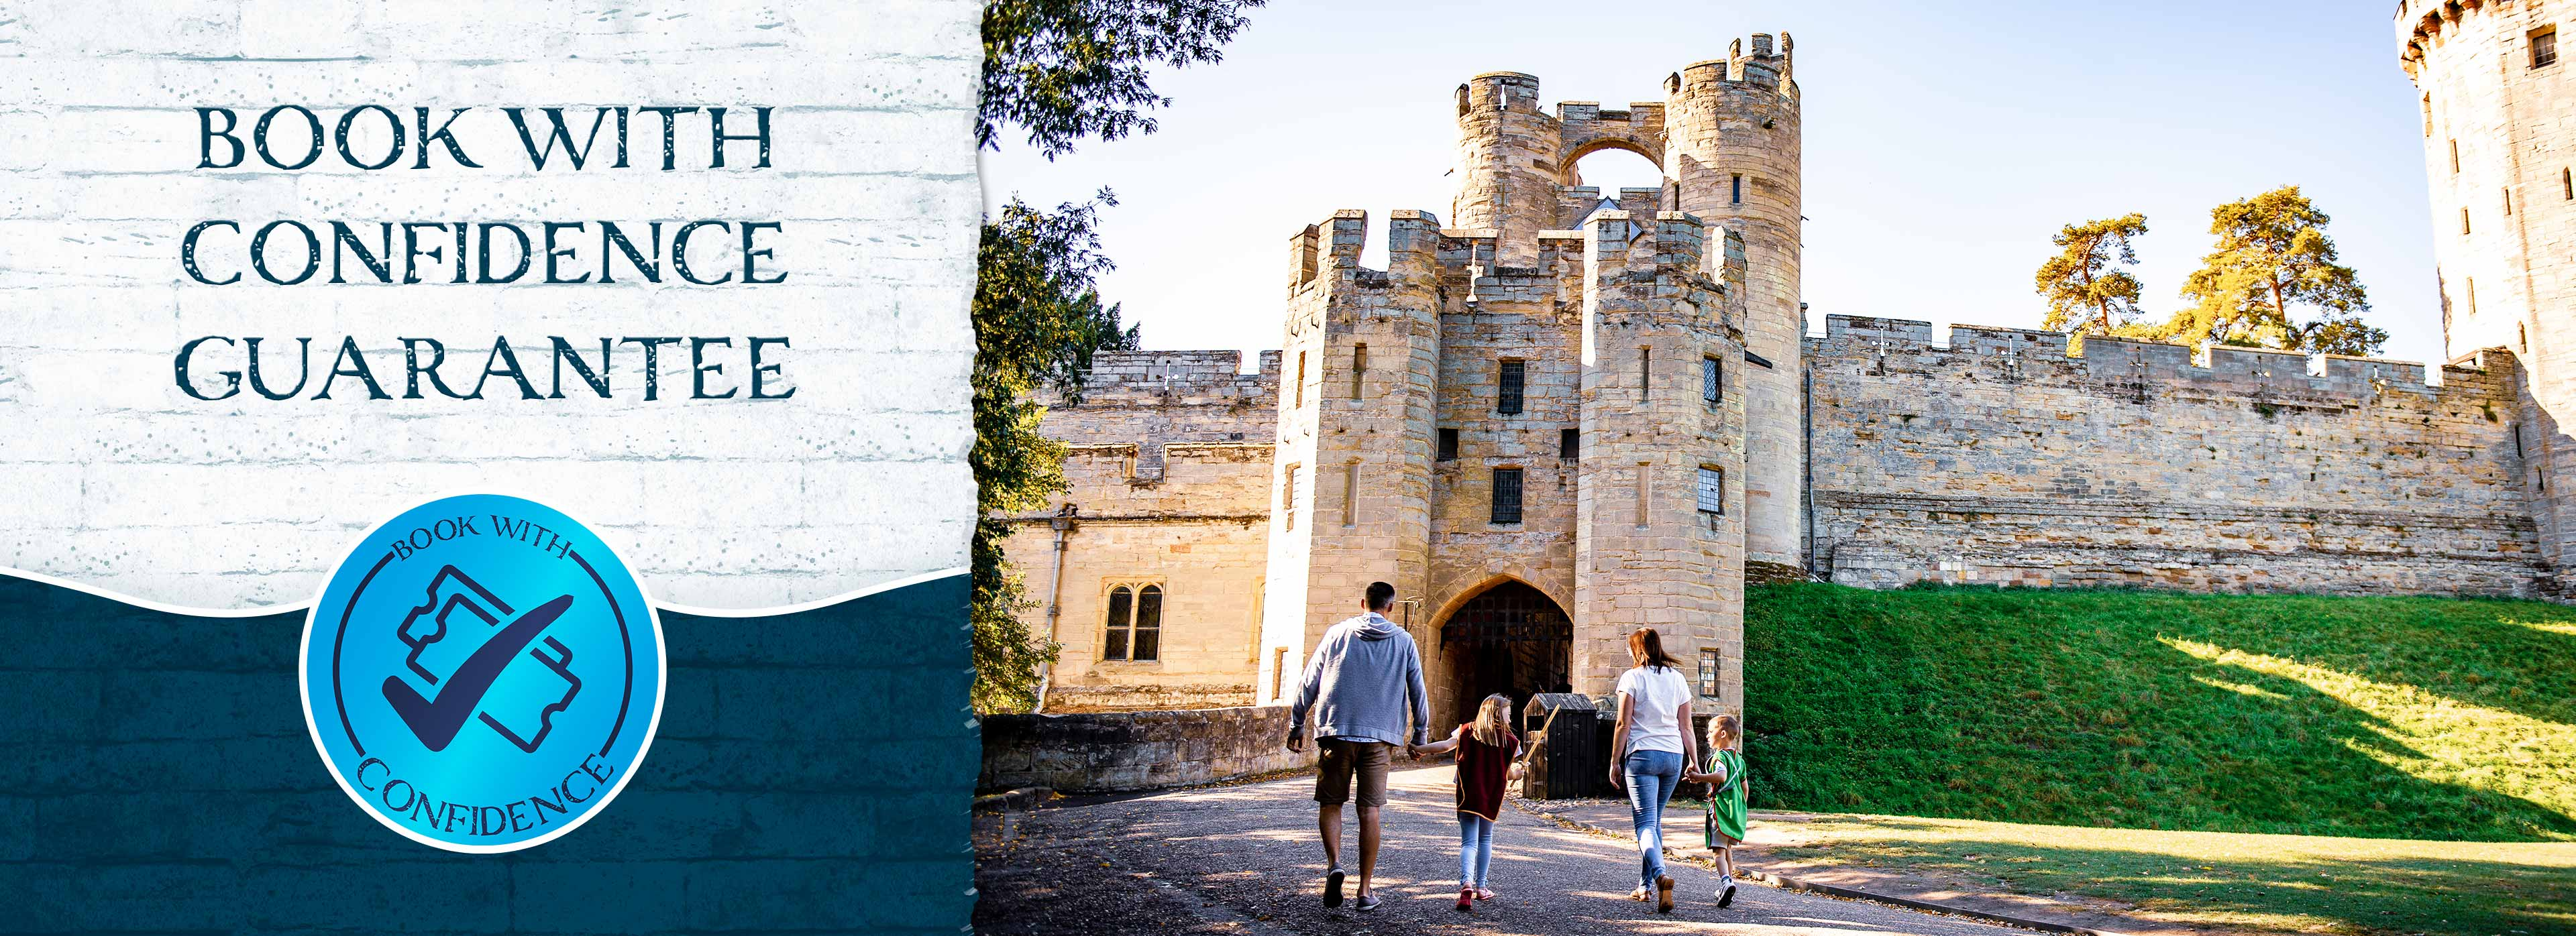 2-day Ininerary at Warwick Castle with FREE Second Day Castle Tickets